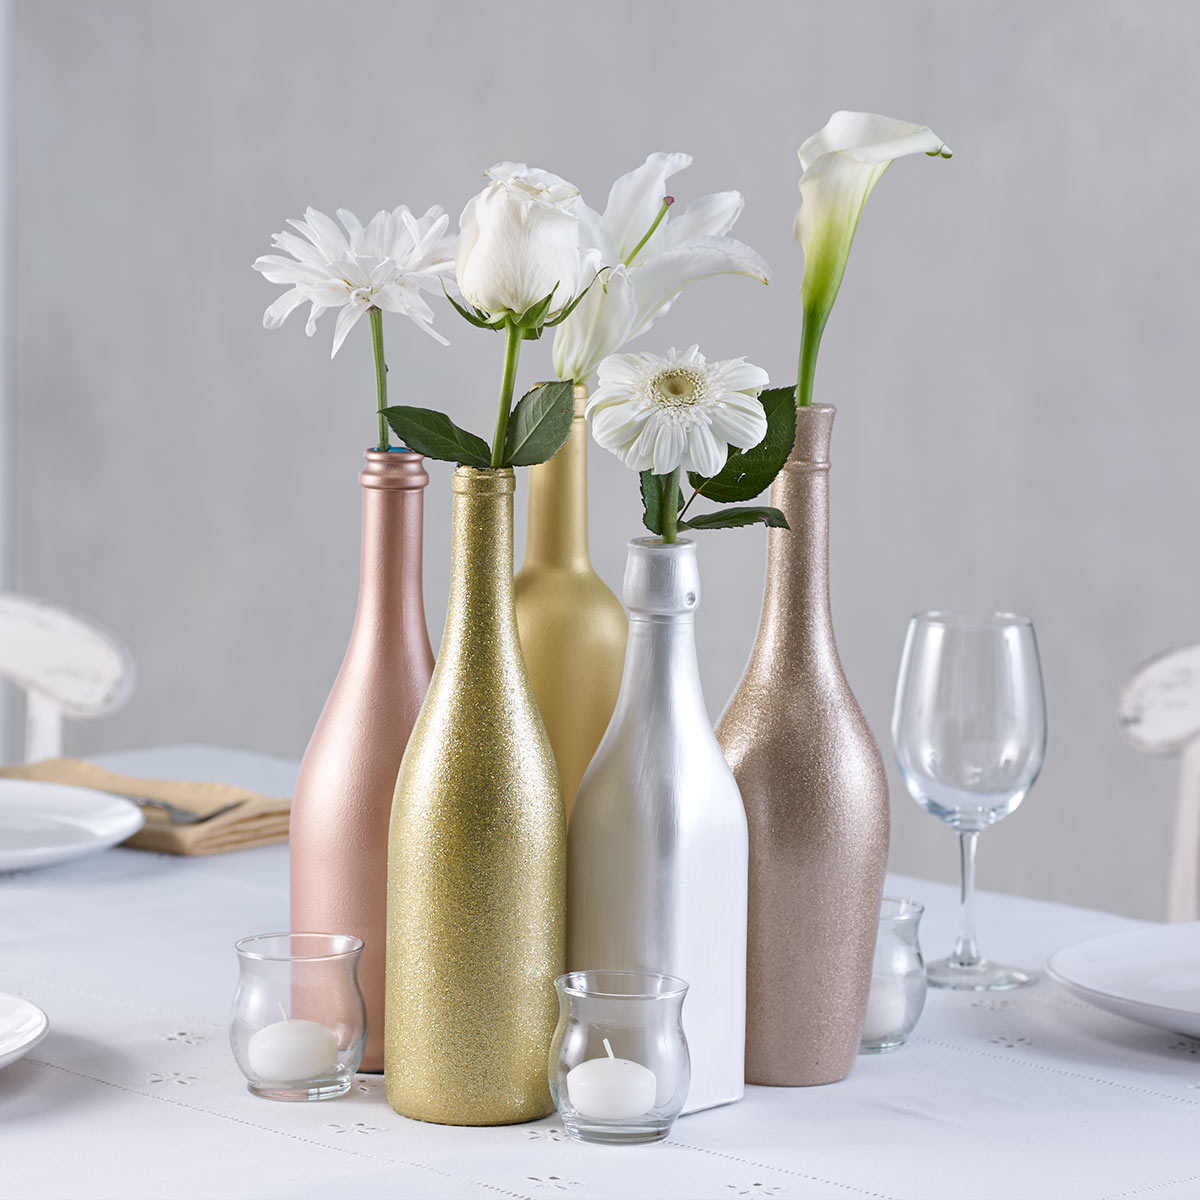 DIY Wedding Centerpiece - Metallic Bottles